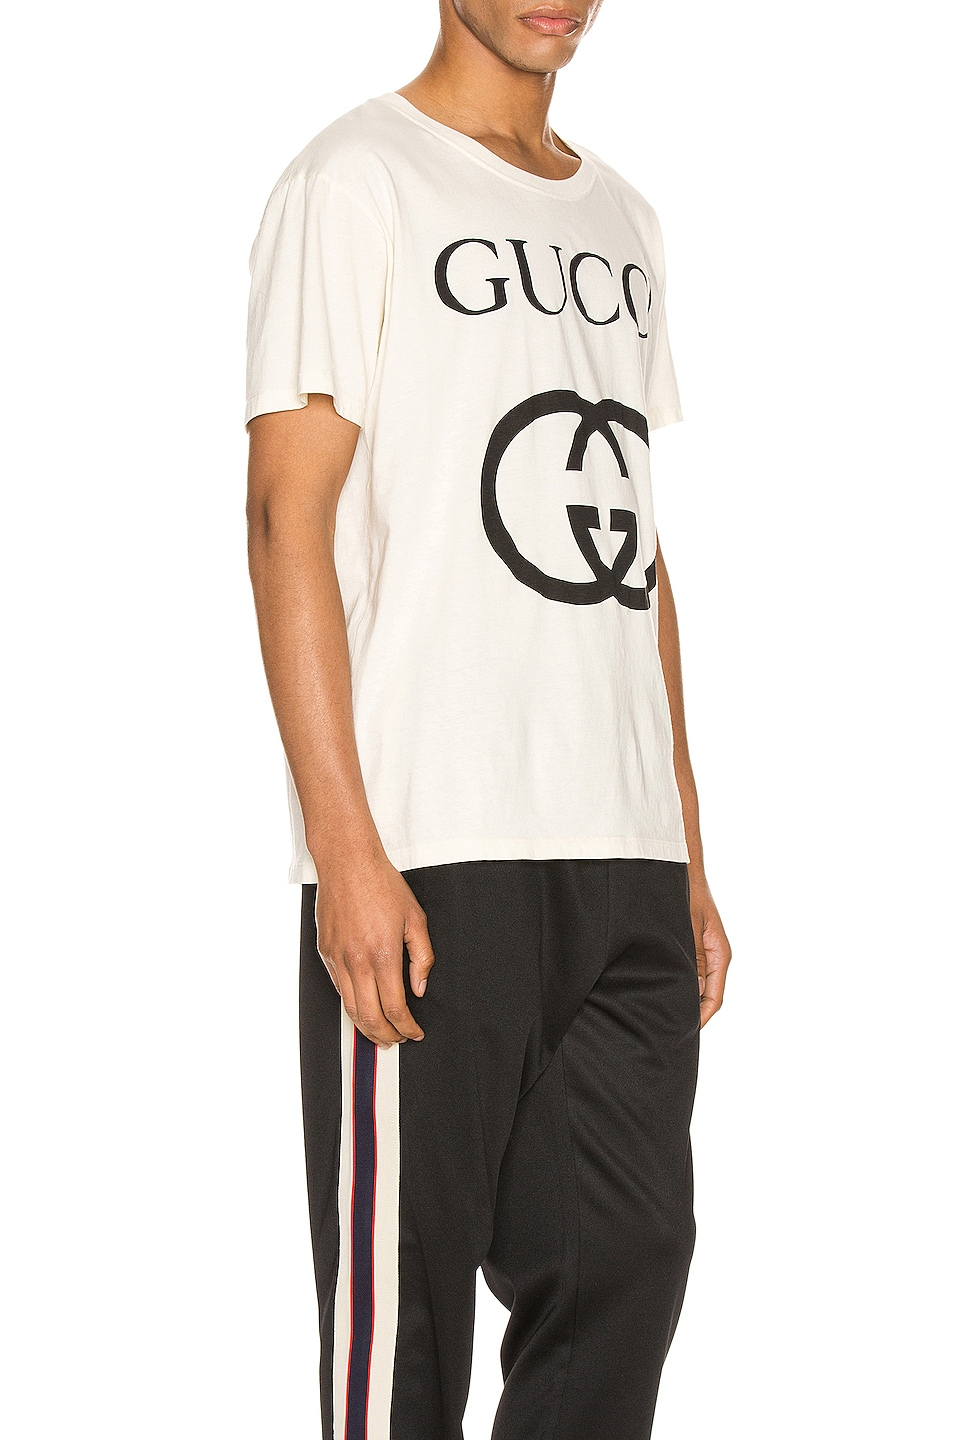 Image 2 of Gucci Oversize Interlocking G Tee in Sunkiss & Black